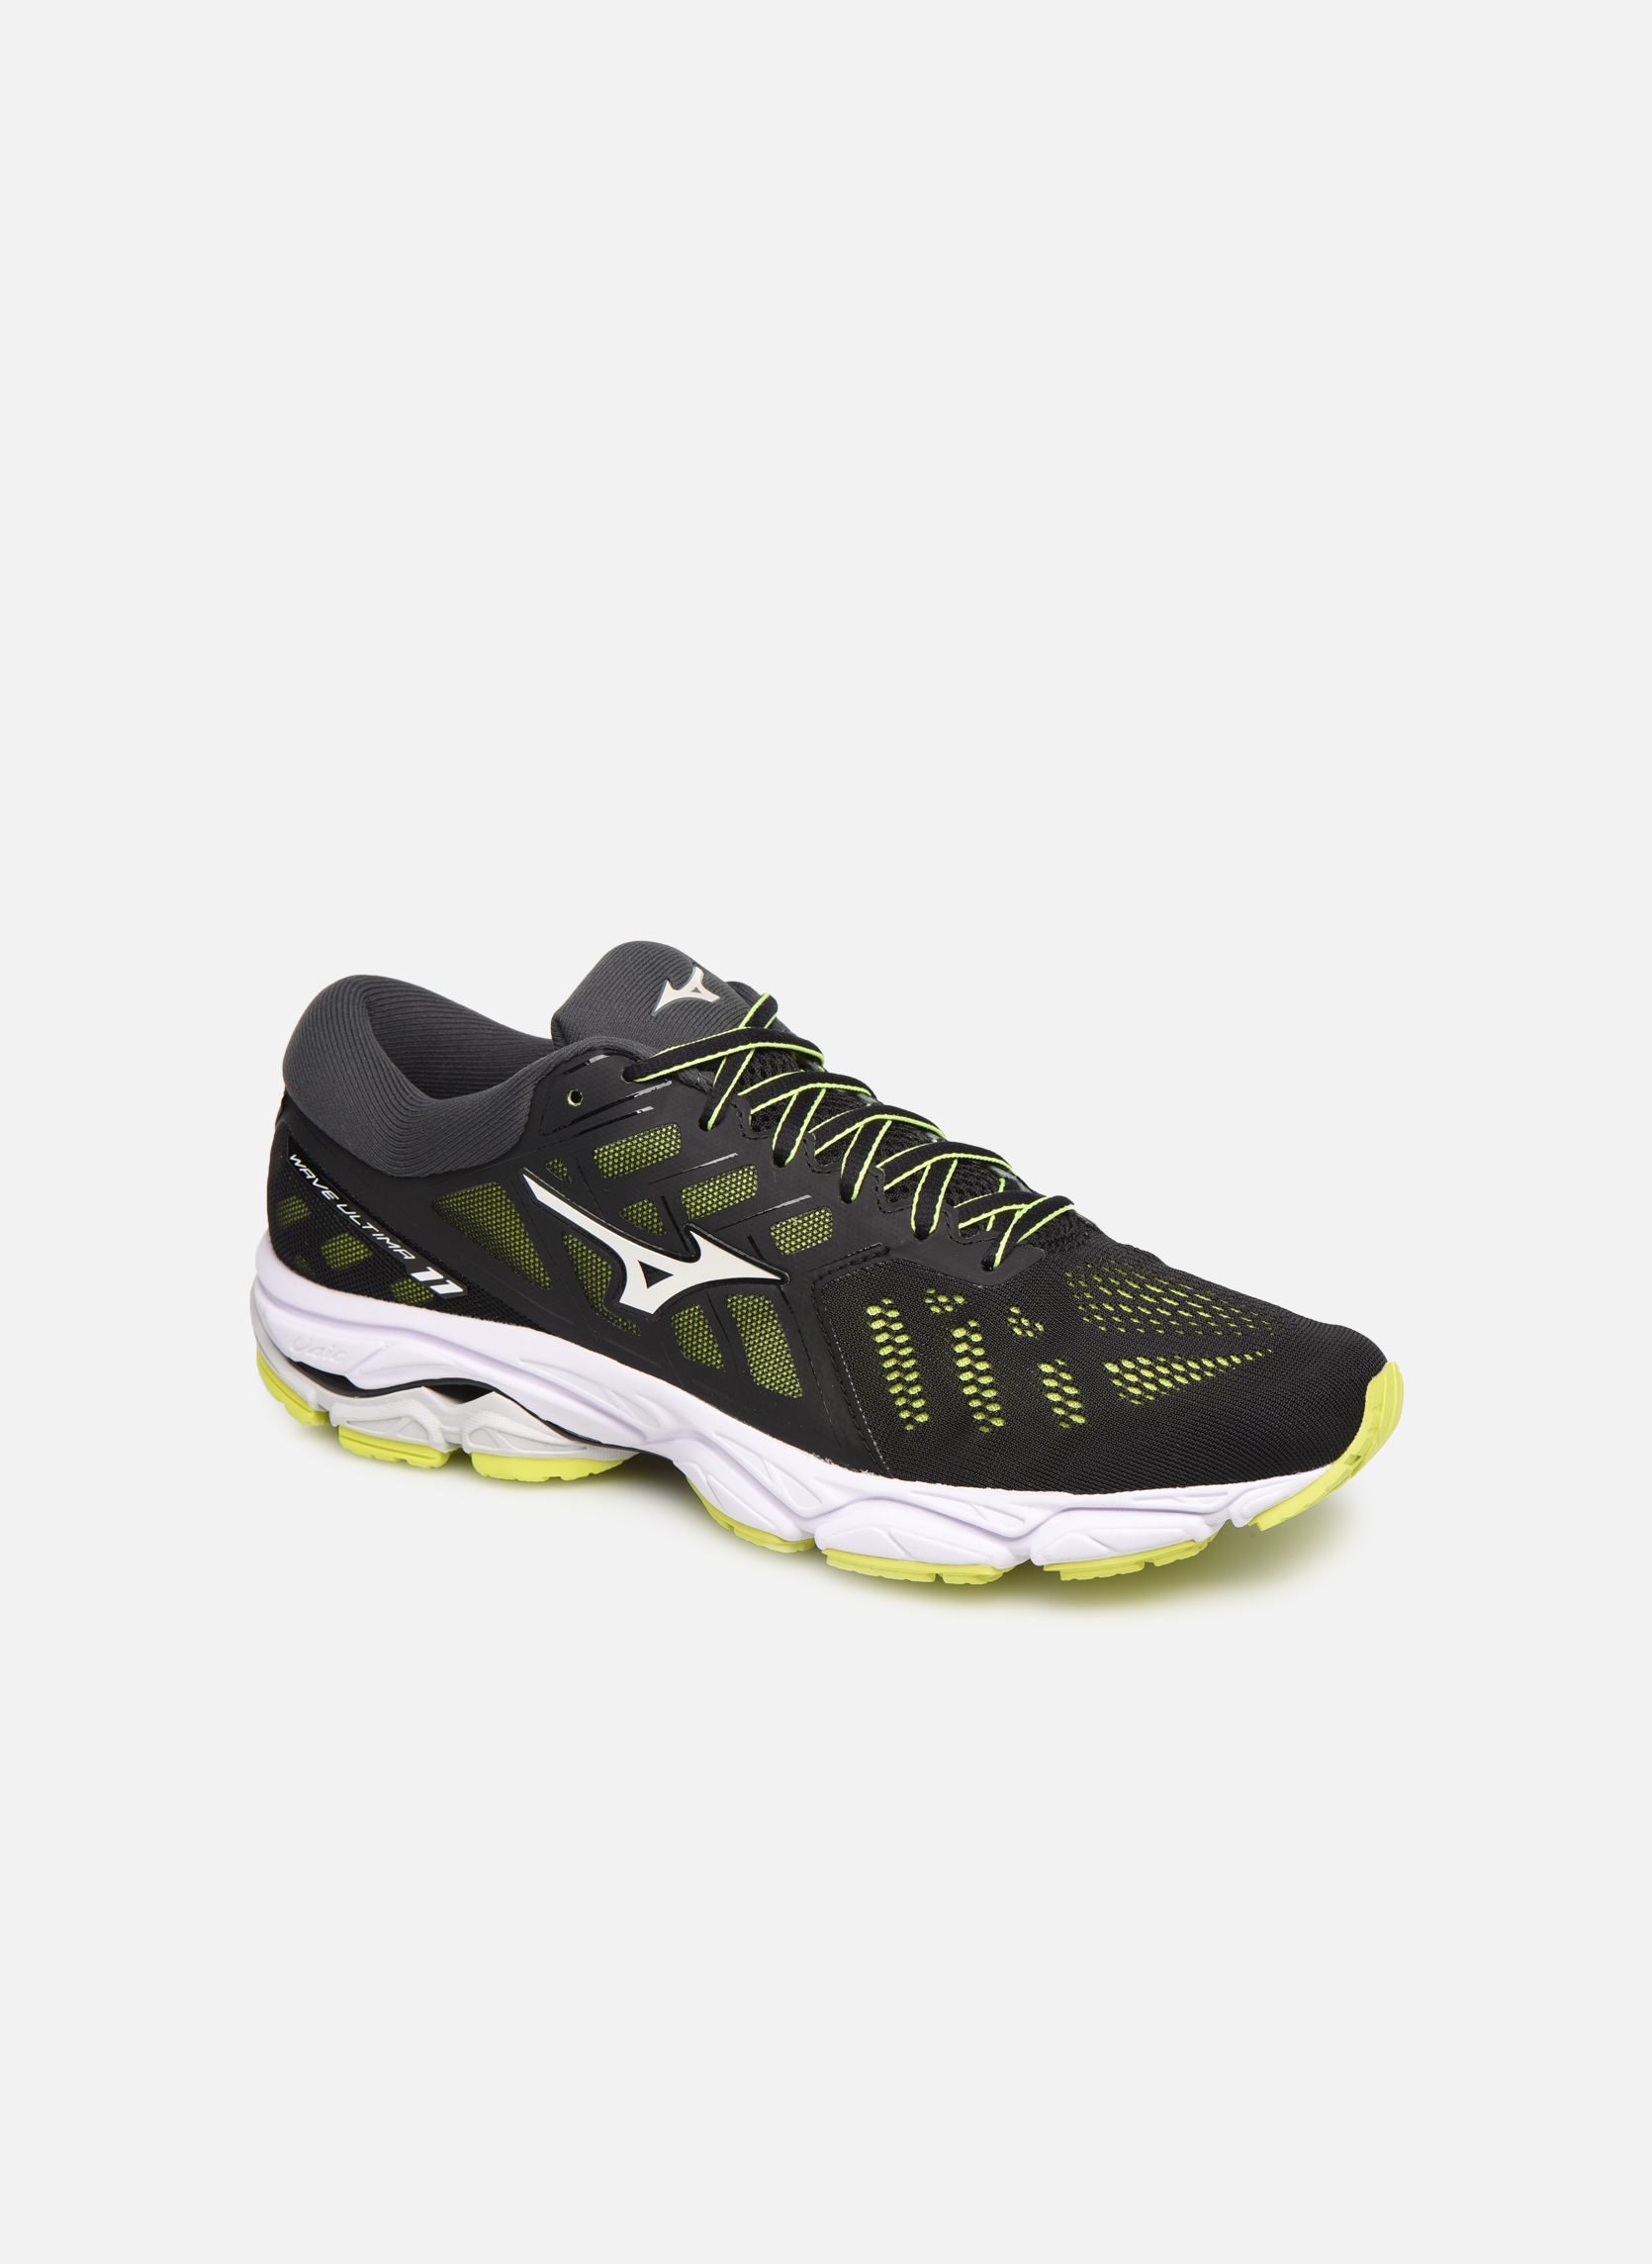 Sportschoenen Wave Ultima 11 by Mizuno